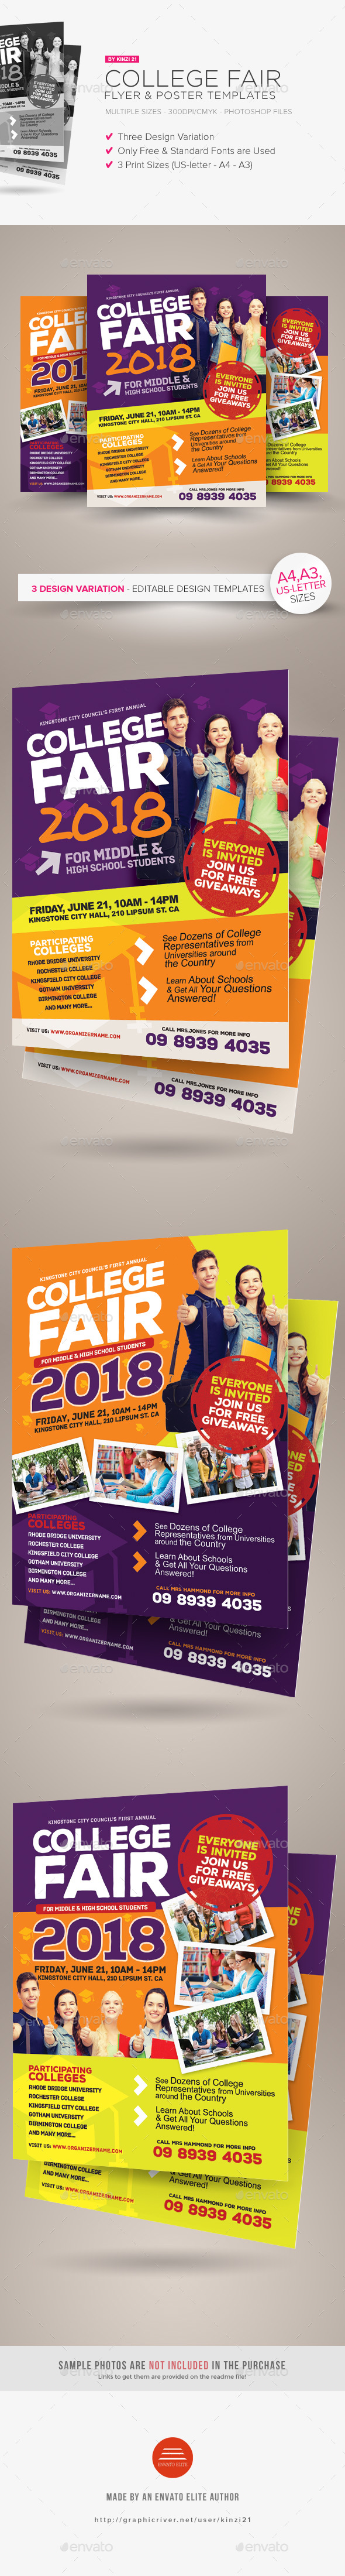 College Fair Flyer Templates by kinzi21 – Help Wanted Template Word